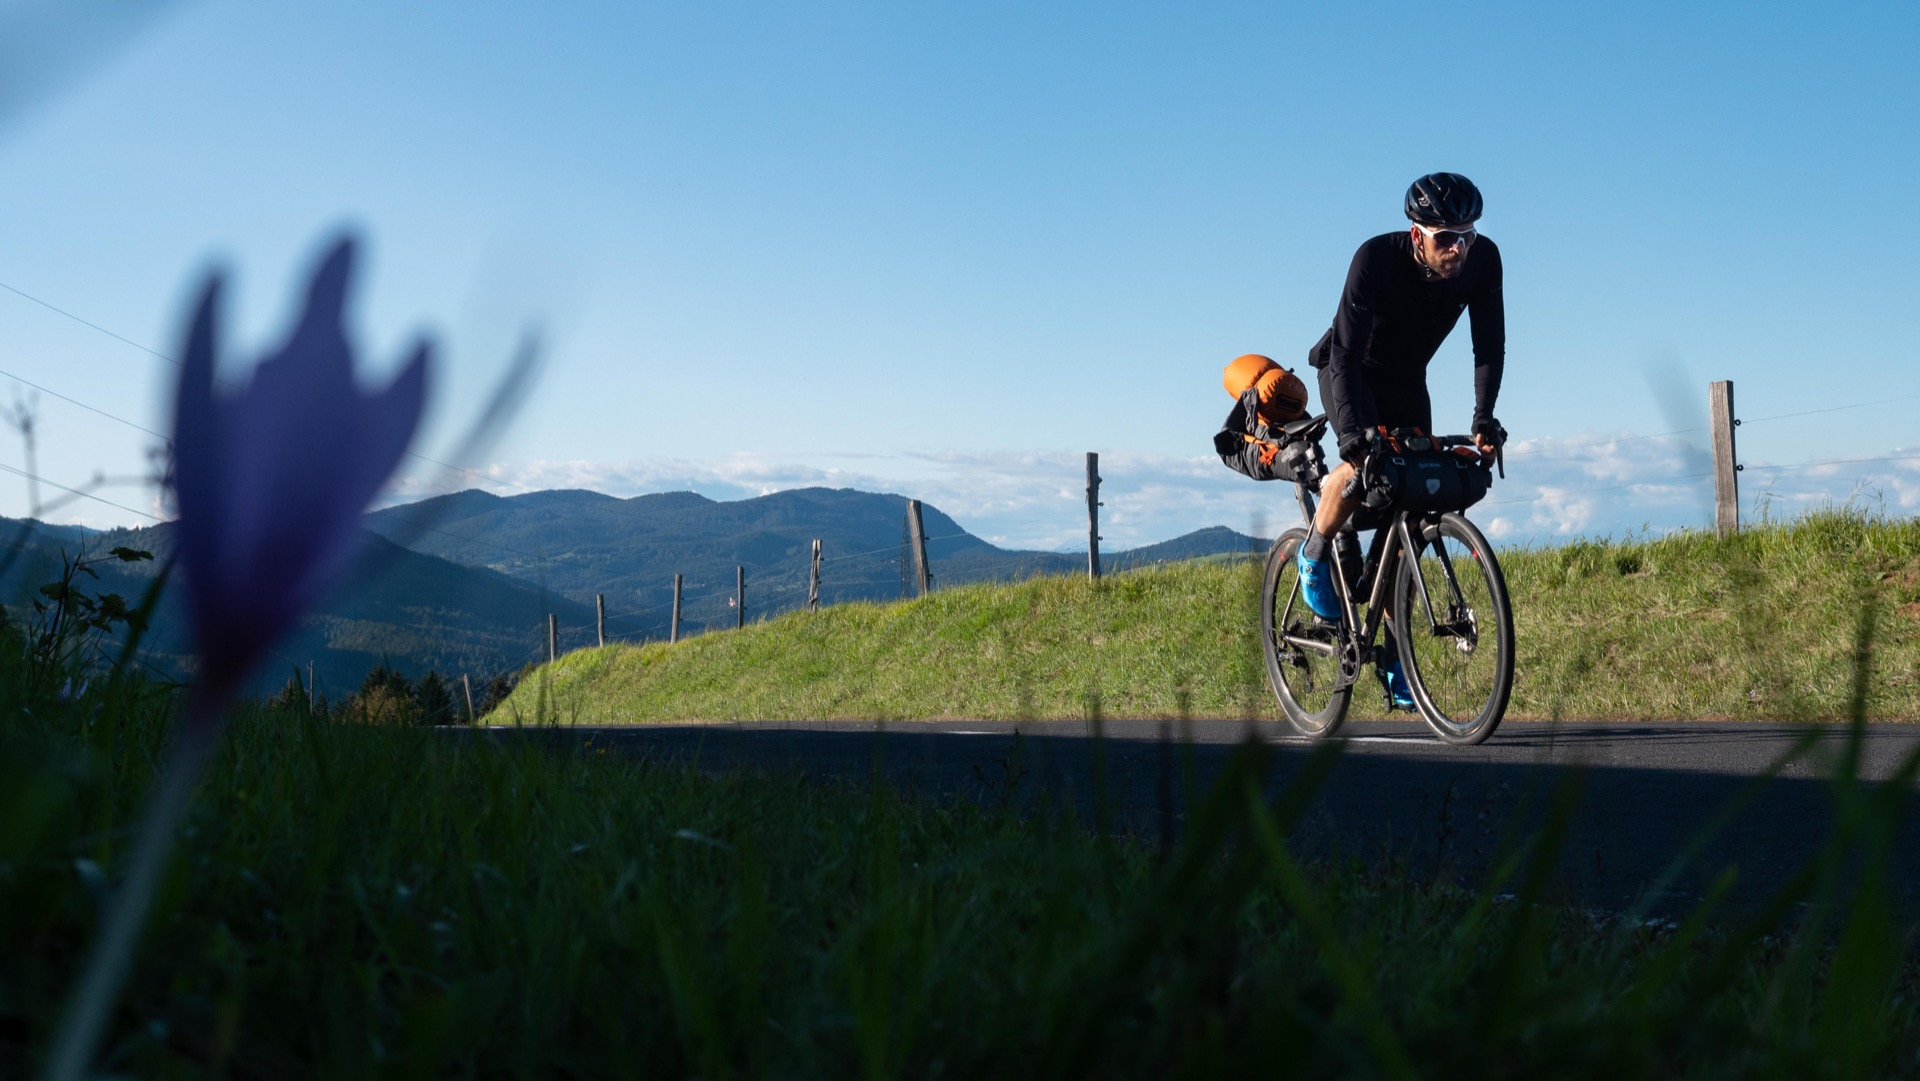 Munich/GER to Karlobag/ Croatia over the Alps Turracher Höhe und Loiblpass (Sept. 26th-30th 2020) Jonas Deichmann_Triathlon around the world in triathlon disziplin over 120 ironman, 456 km swimming / 21600 km cycling / 5040 km running, 